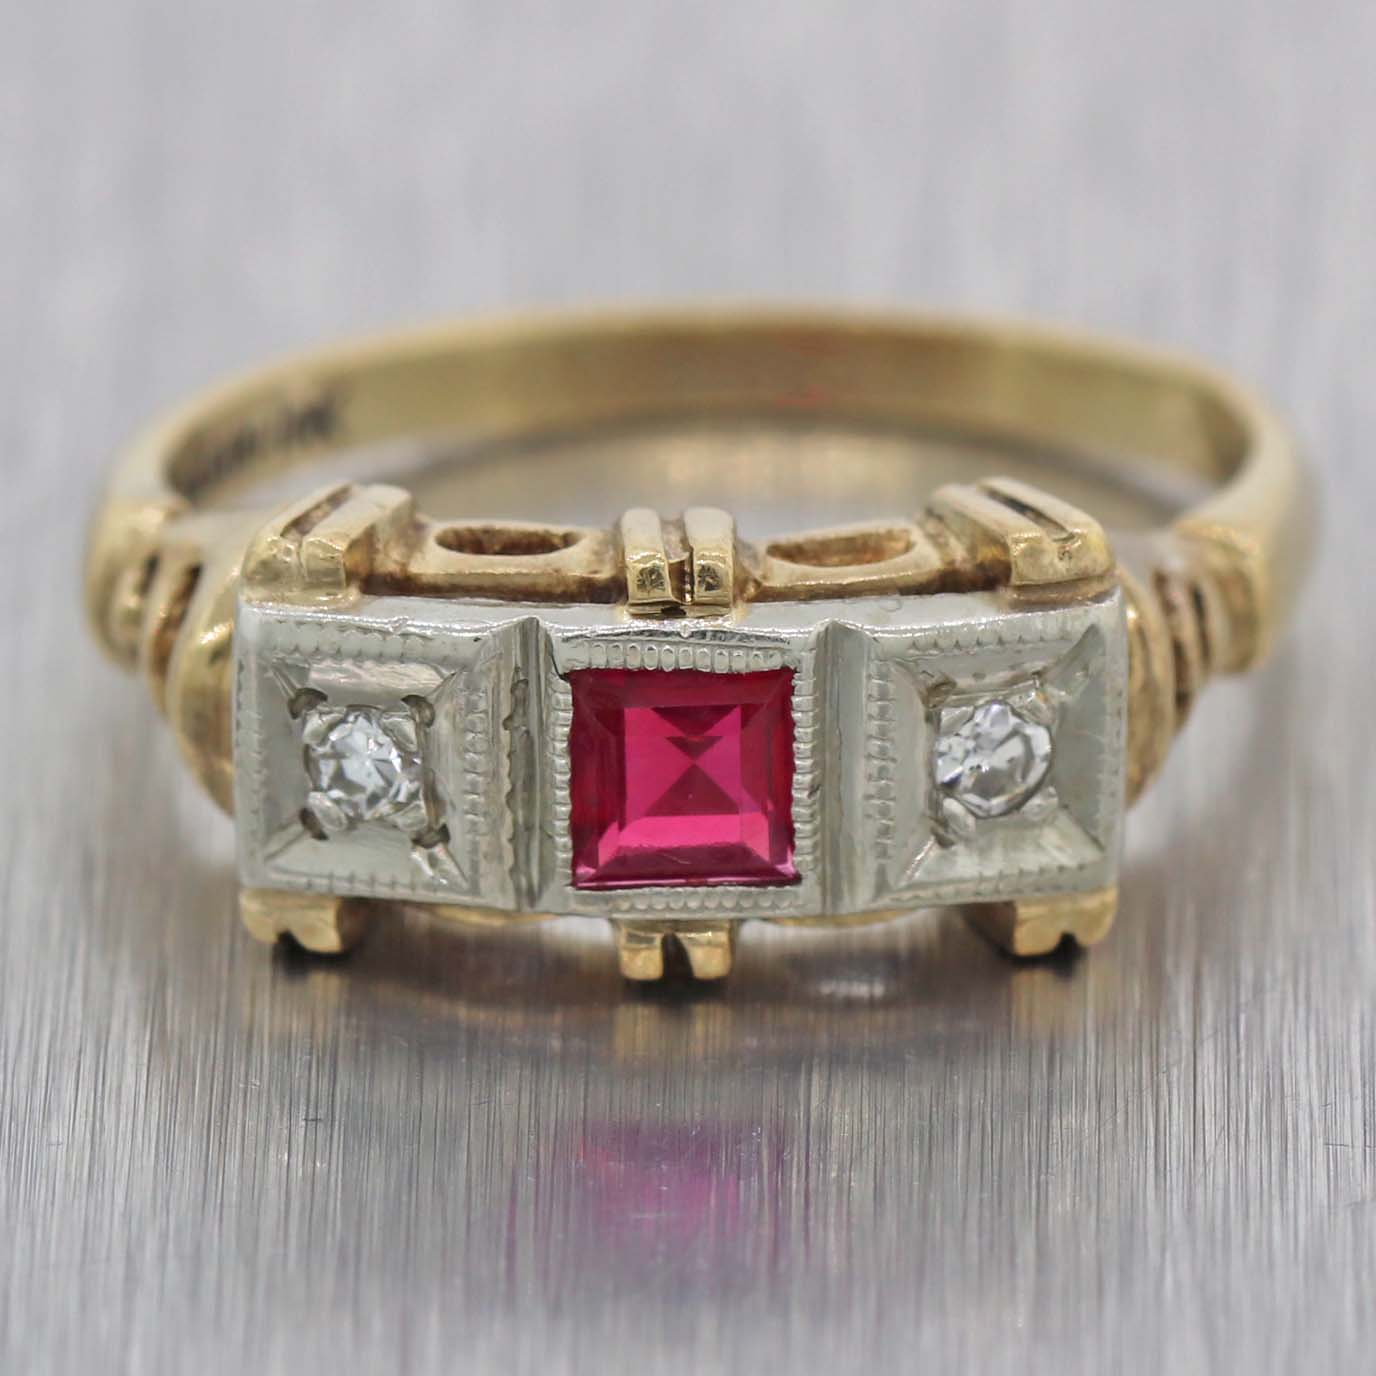 bed7888a71140 1930s Antique Art Deco Estate 10k Yellow Gold .25ctw Ruby Diamond Cocktail  Ring